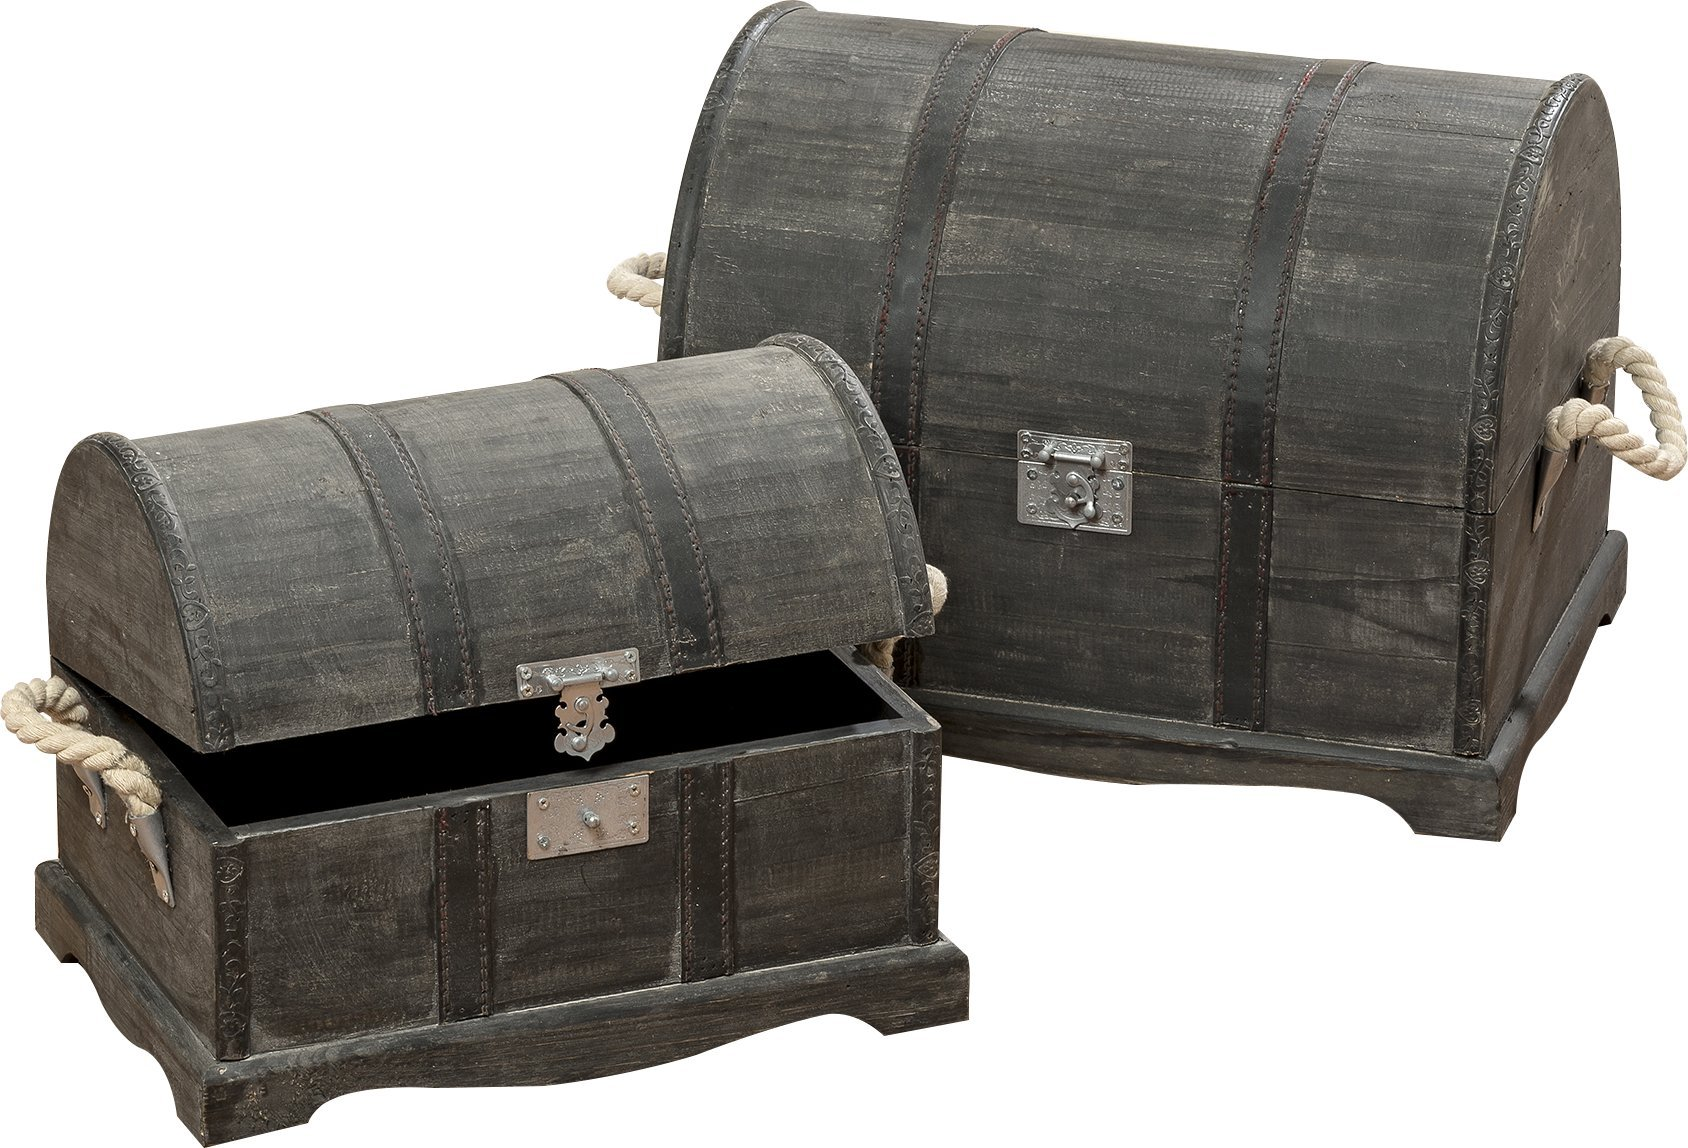 The Cape Cod Treasure Chests, Set of 2, Trunks, Storage Boxes, Faux Leather Straps, Hinged Top, Nautical White Rope Side Handles, Silver Flip Latch, Dark Gray Wood, Both Over 1 Ft Long WHW